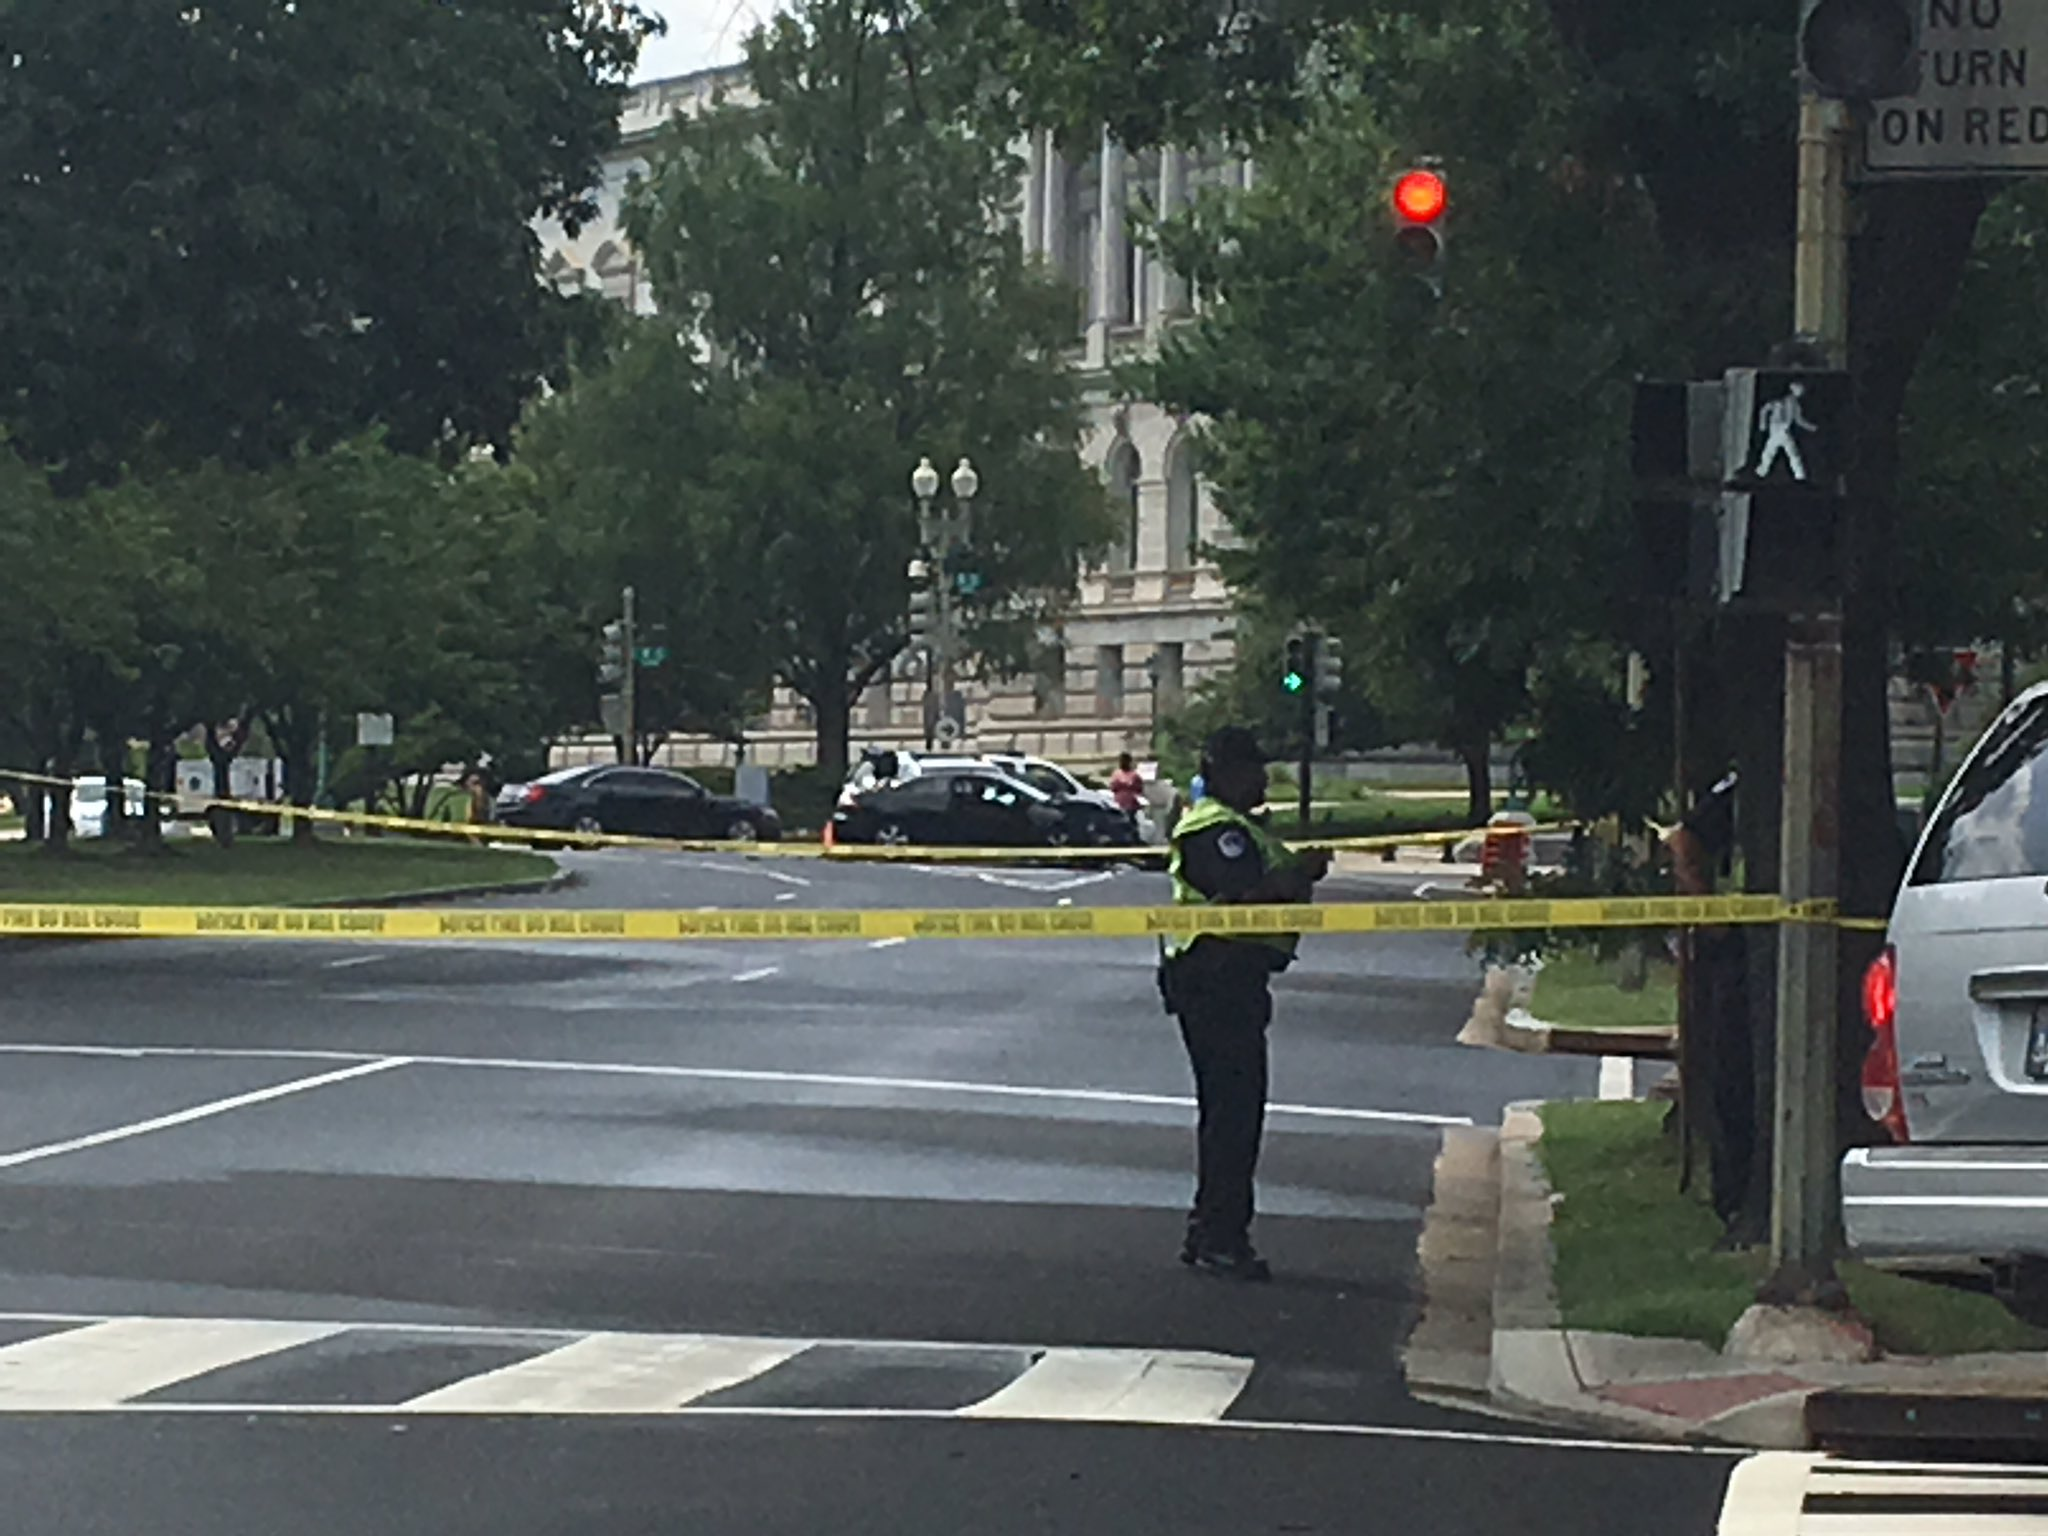 Black car at center of pic with trunk open focus of investigation near U.S. Capitol, Monday, July 17, 2017 (Nathan Baca/ABC7)